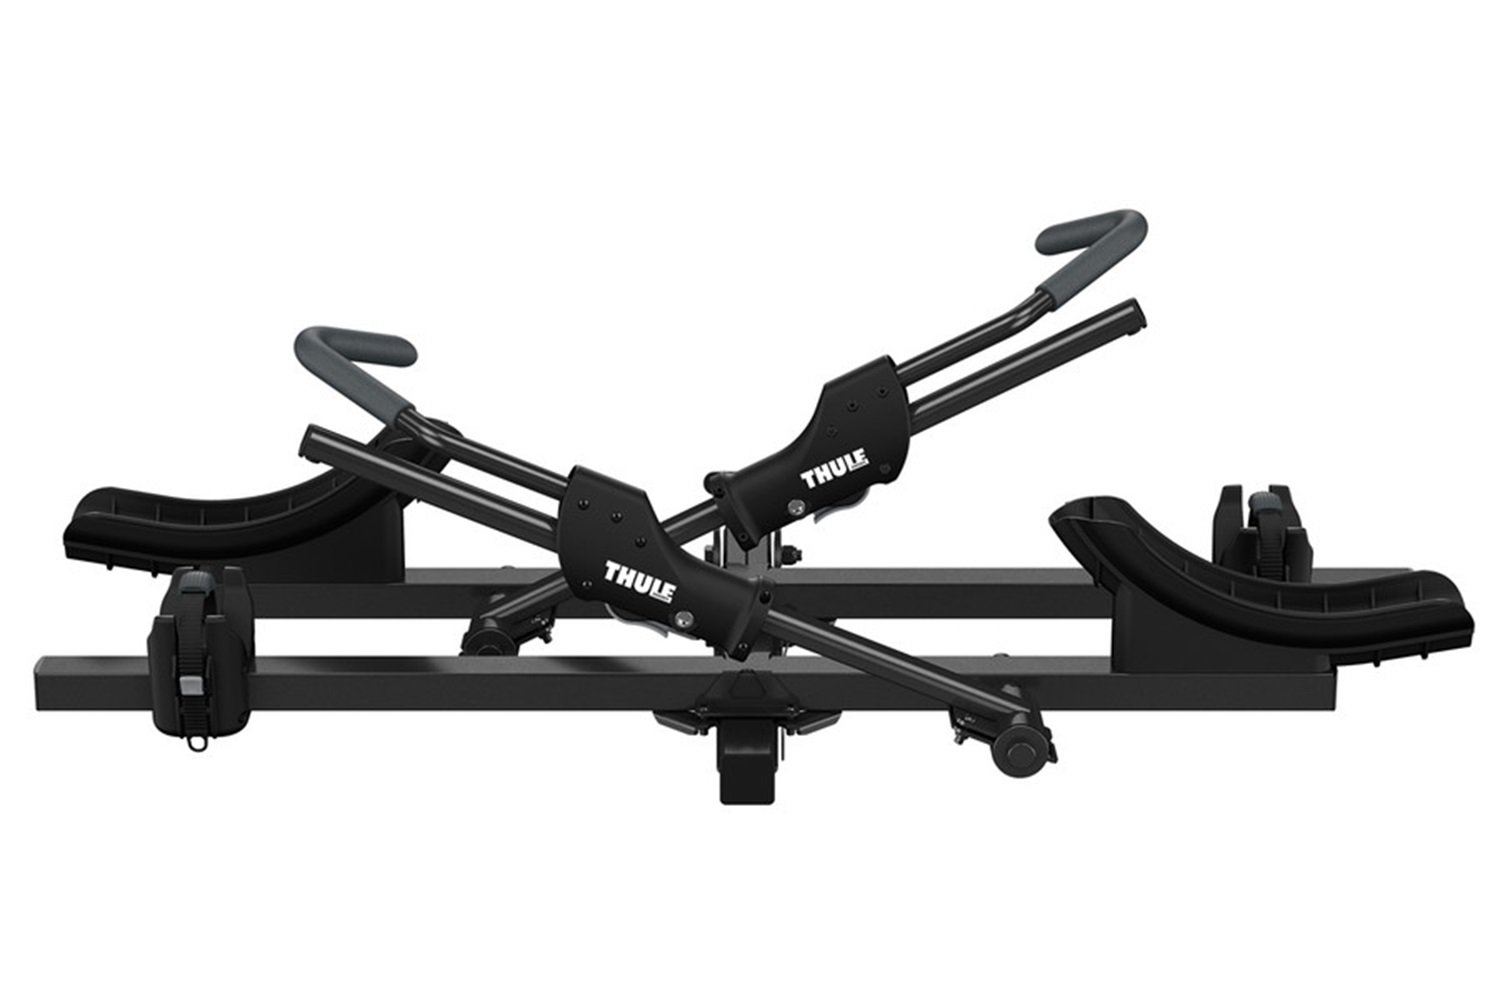 Thule T2 Classic hitch mount bike carrier